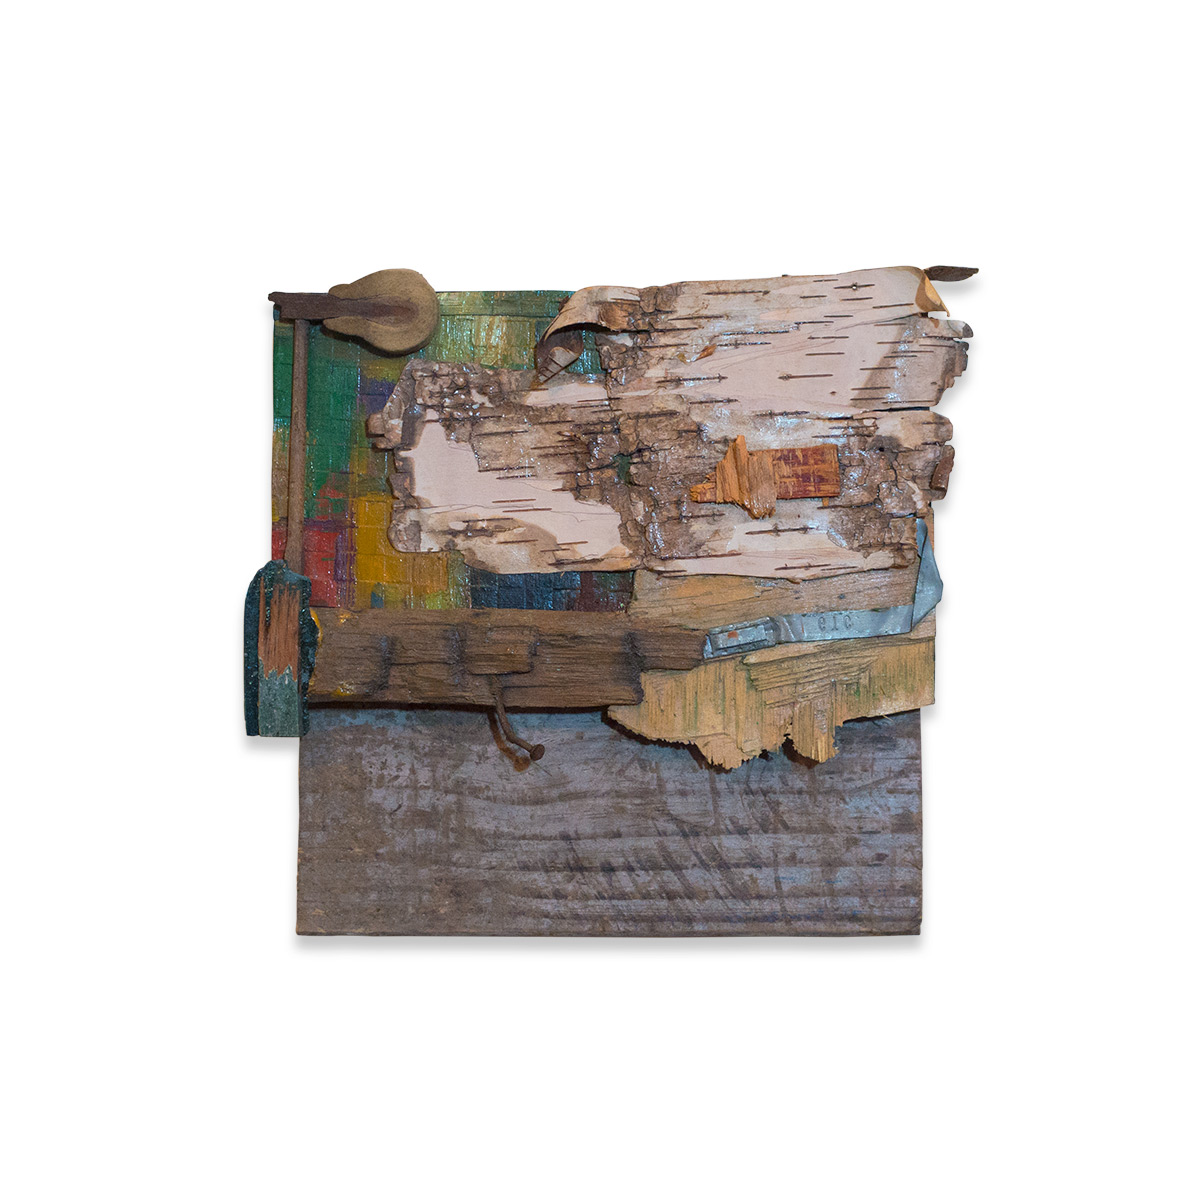 LITTLE LANDSCAPE 2015 found objects/mixed media 9 x 3 x 10 in